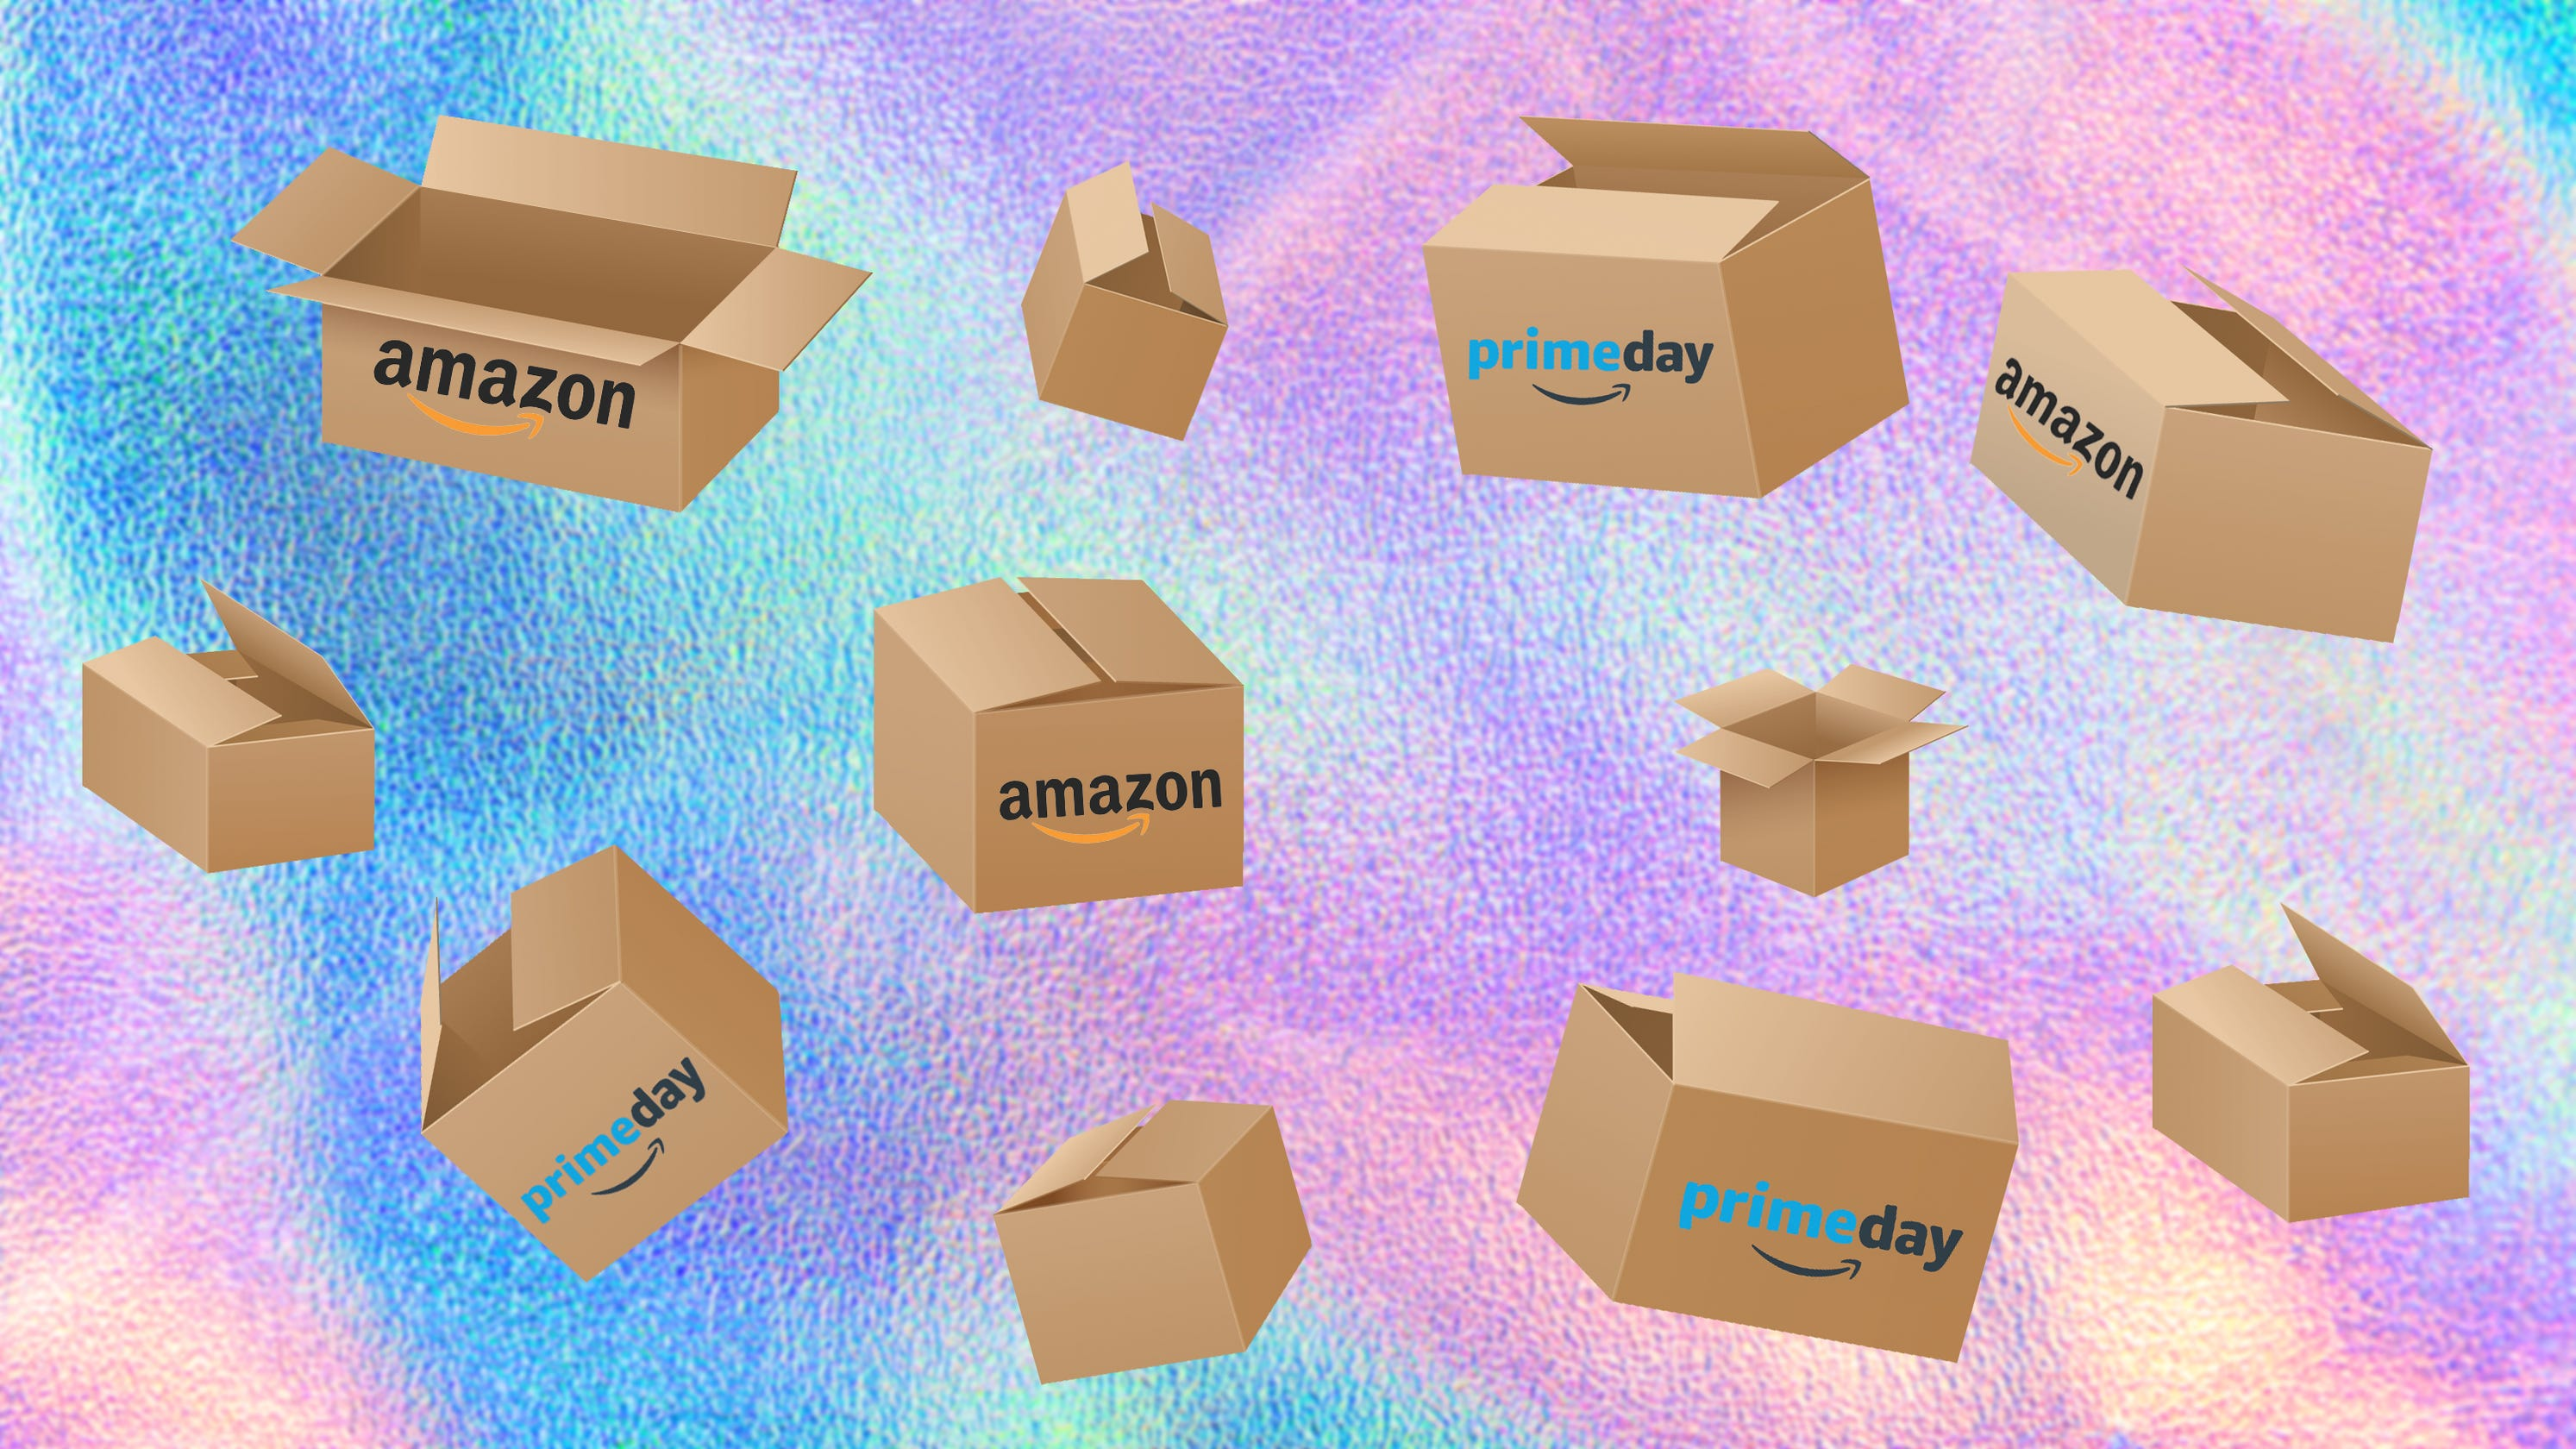 Amazon Prime Day 2019: Everything you need to know about ...Amazon Prime Day